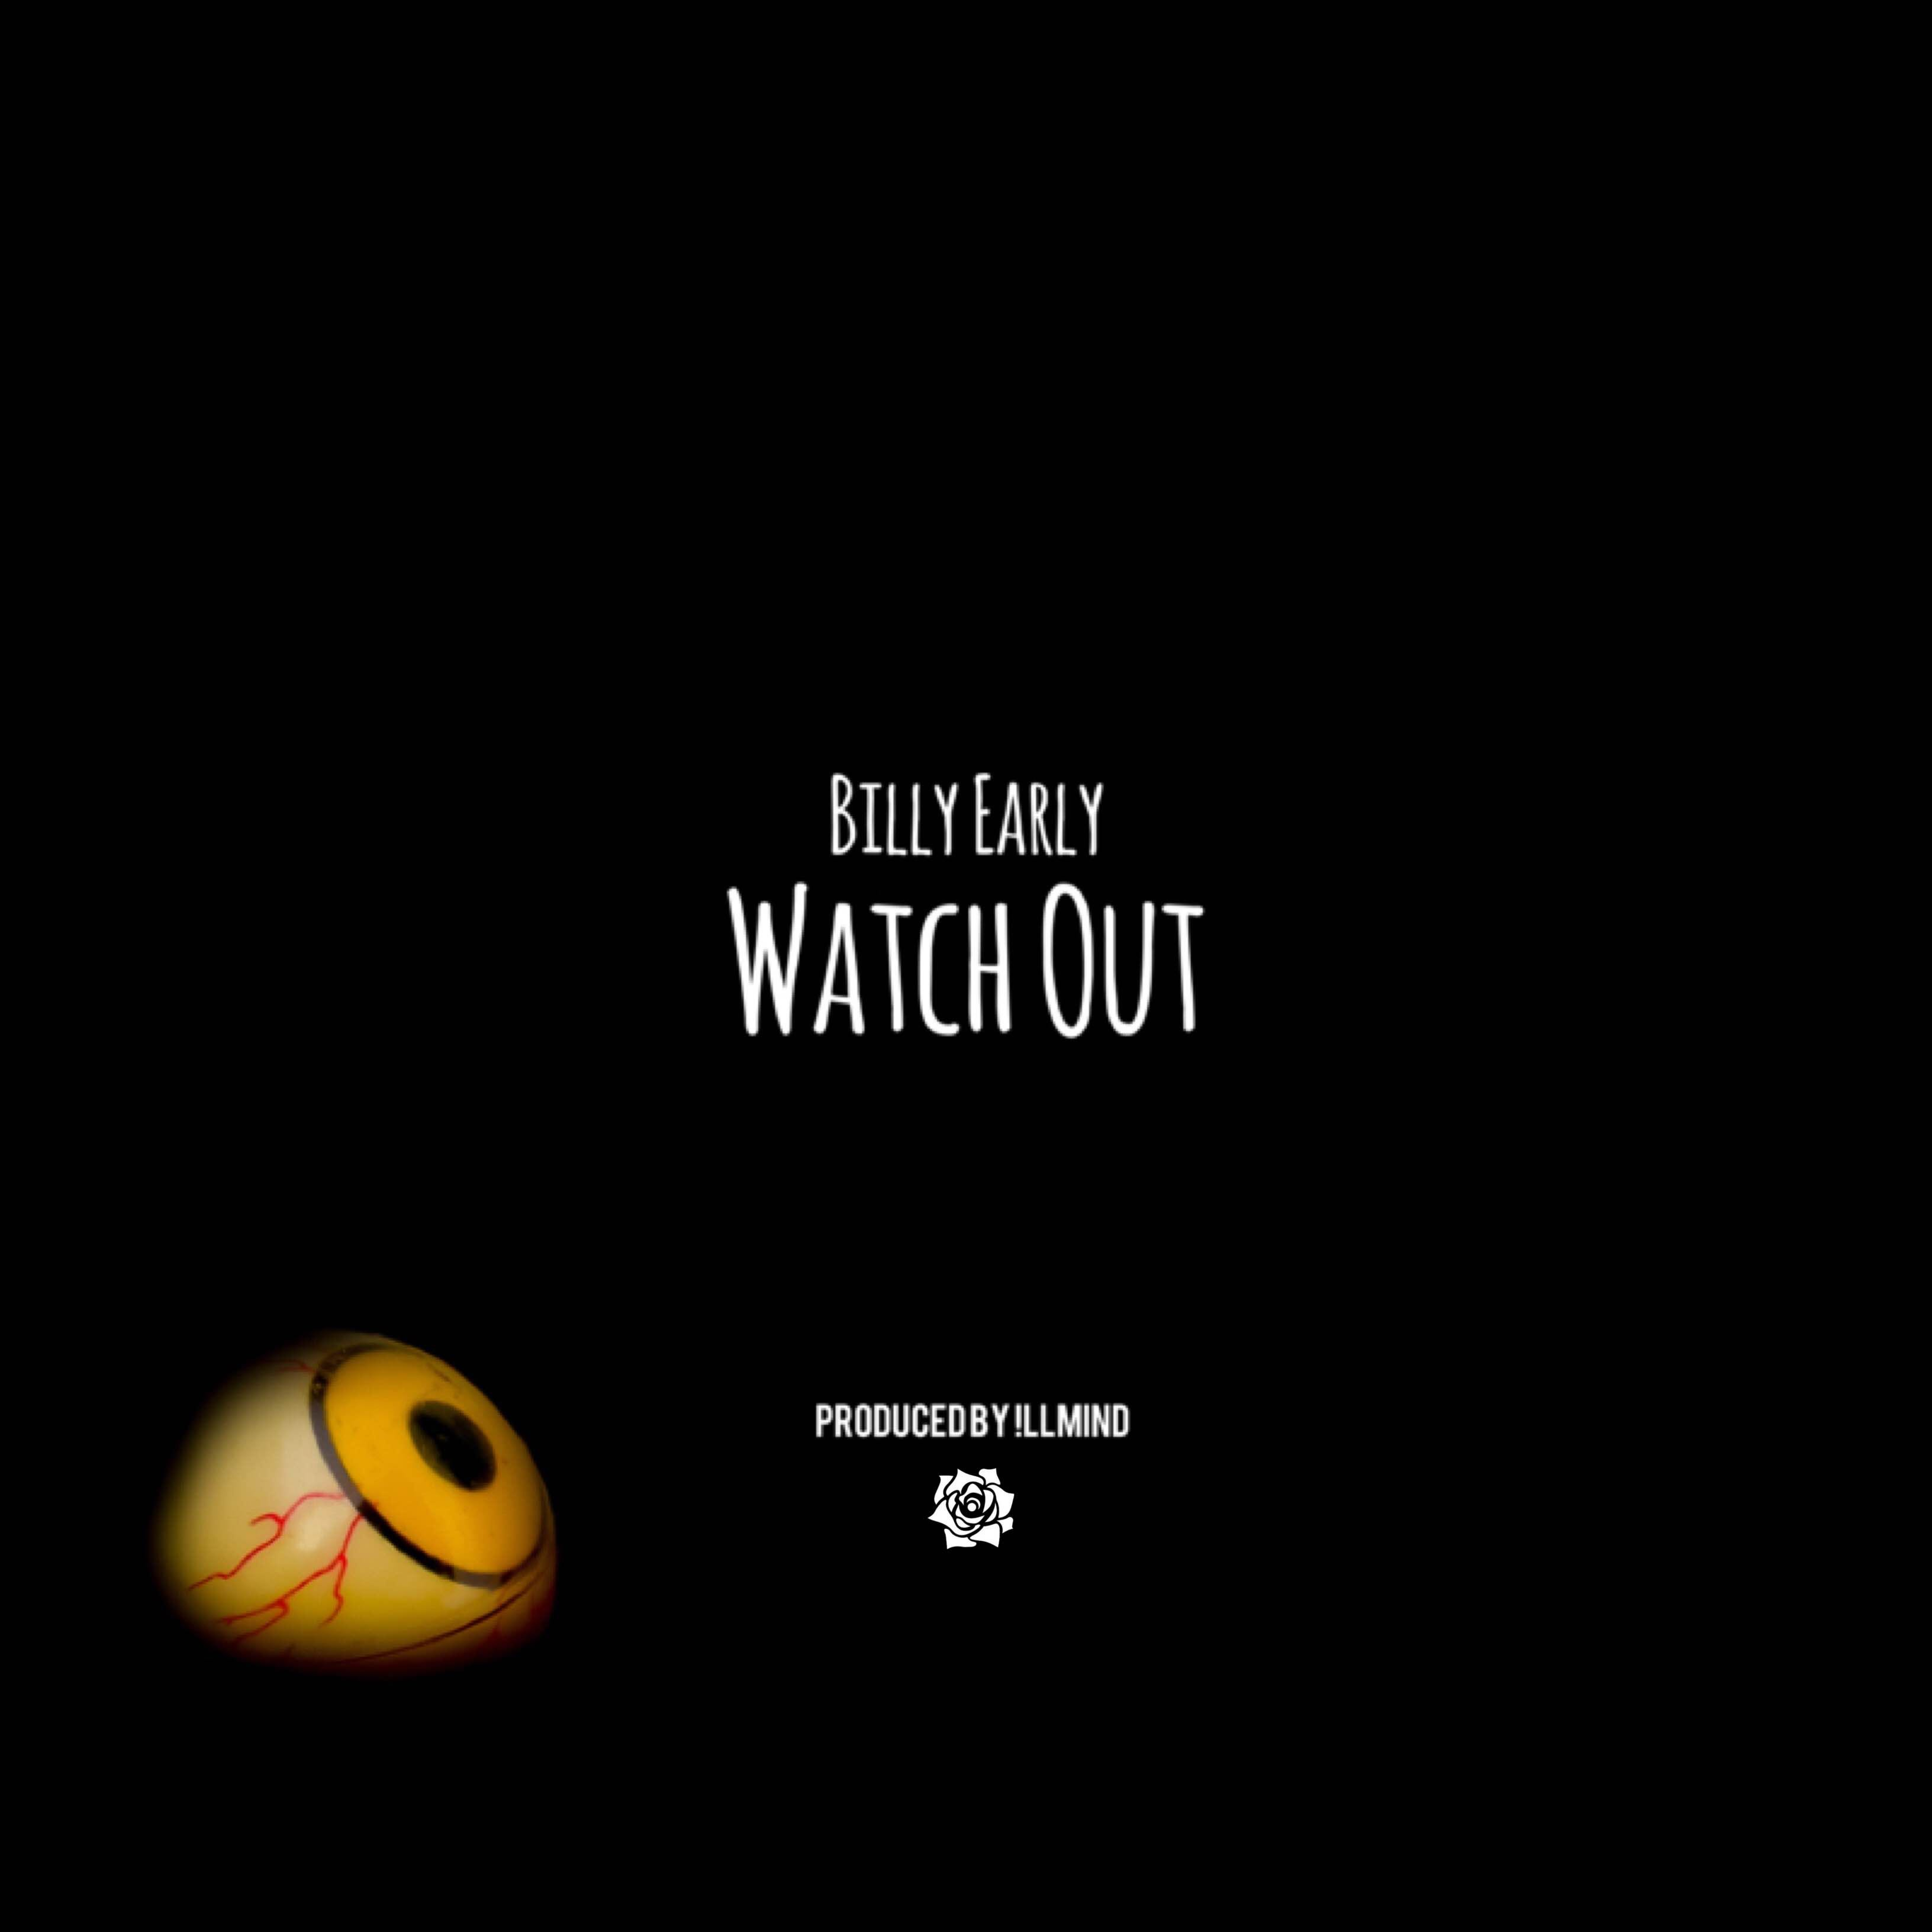 """Billy Early """"Watch Out"""" (prod by !llmind) [audio]"""